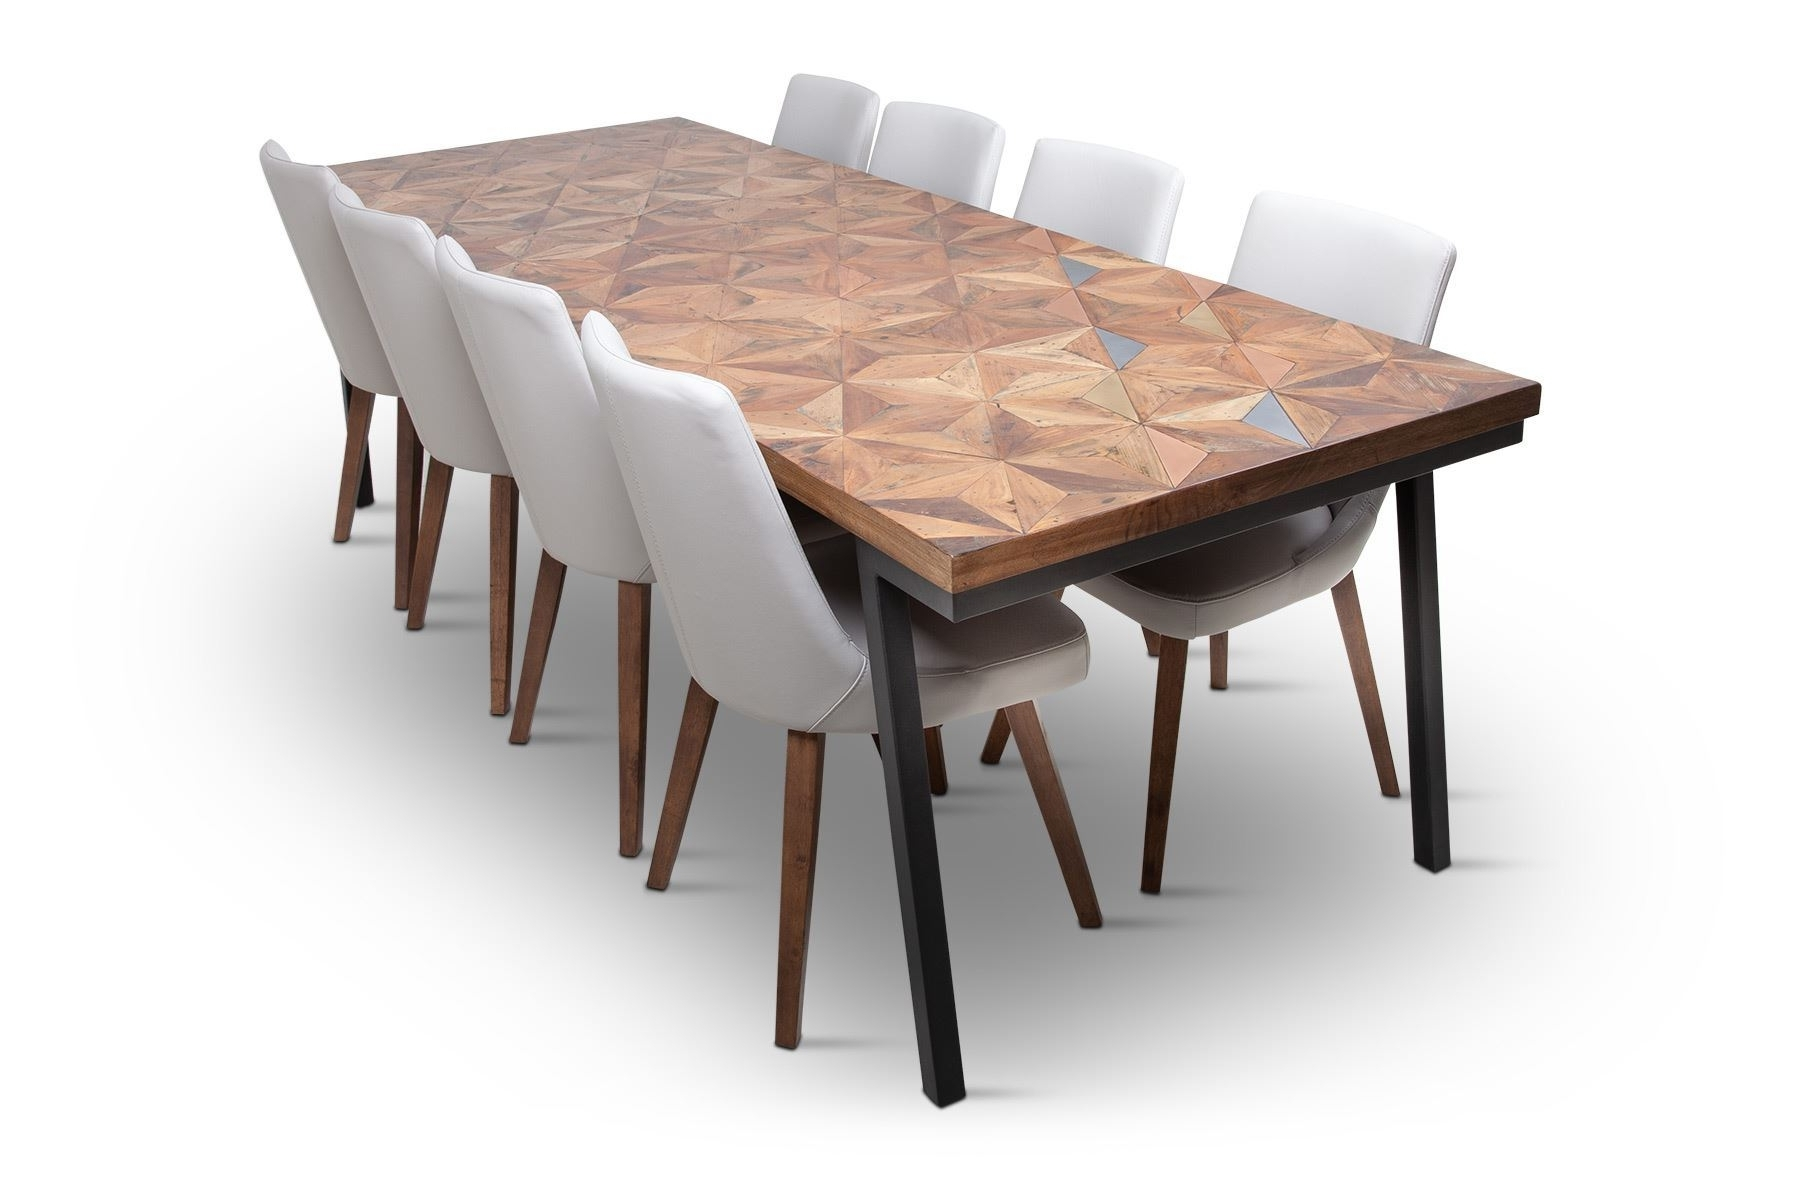 Phoenix Dining Tables Pertaining To Latest Rice Furniture (View 17 of 25)